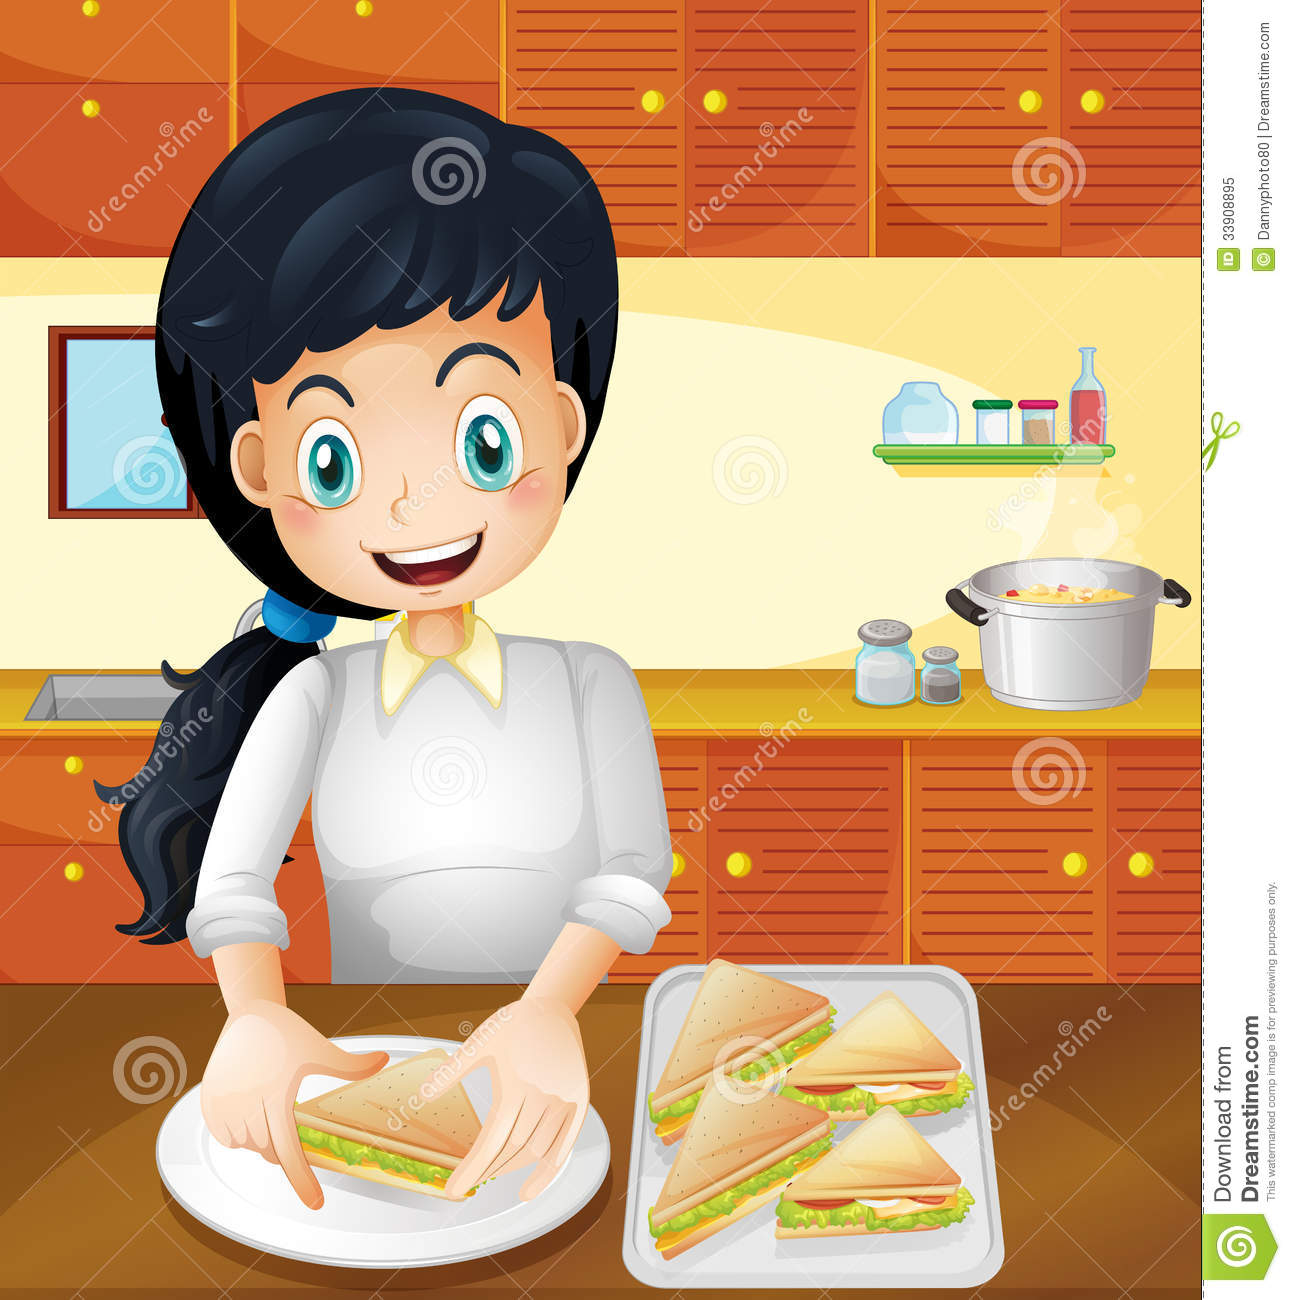 A Happy Mother Preparing Snacks In The Kitchen Royalty Free Stock Photo Image 33908895